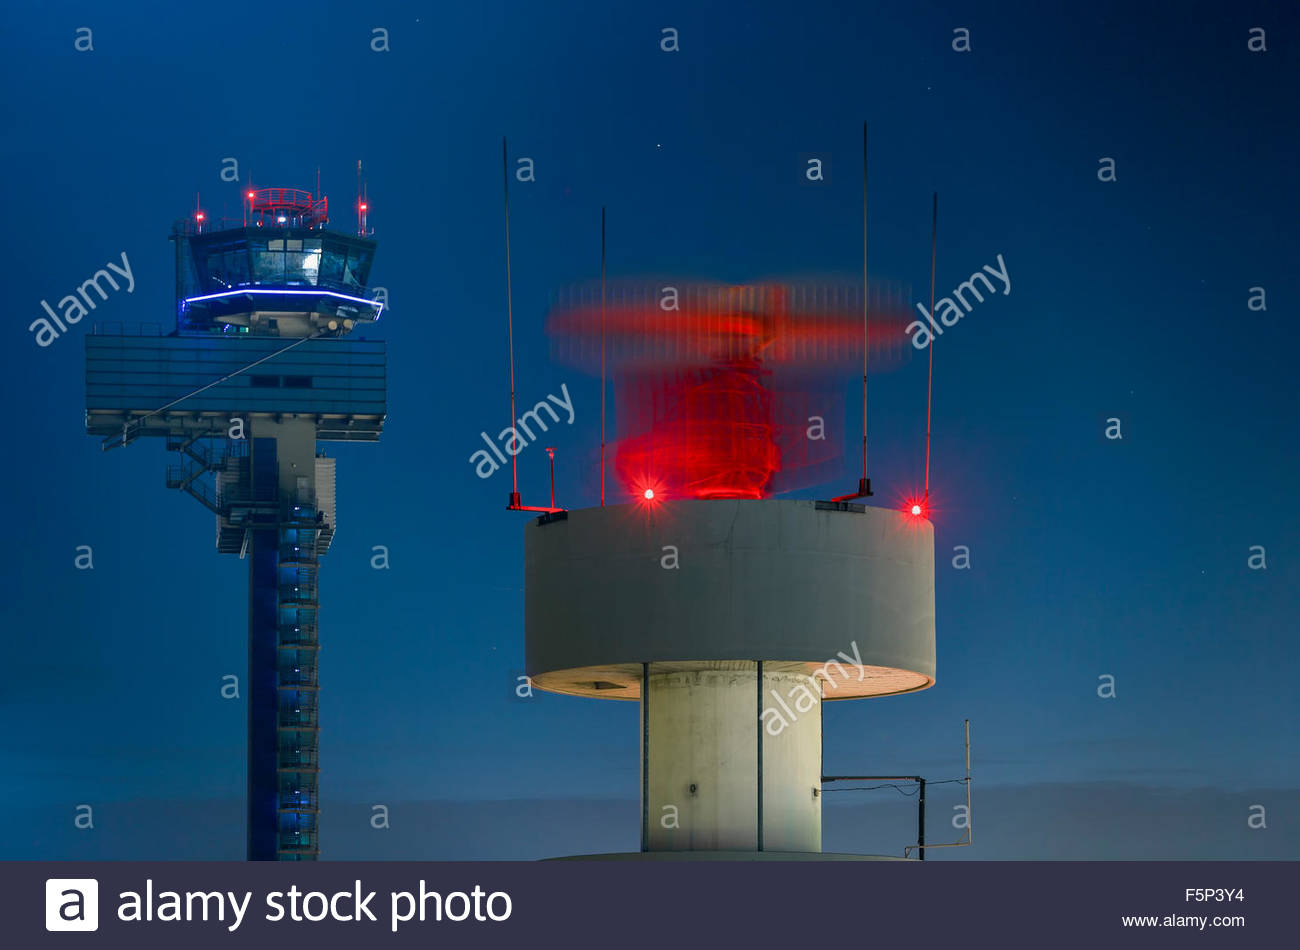 ATC air traffic control tower ASR airport surveillance radar antenna primary radar secondary system Duesseldorf - Stock Image